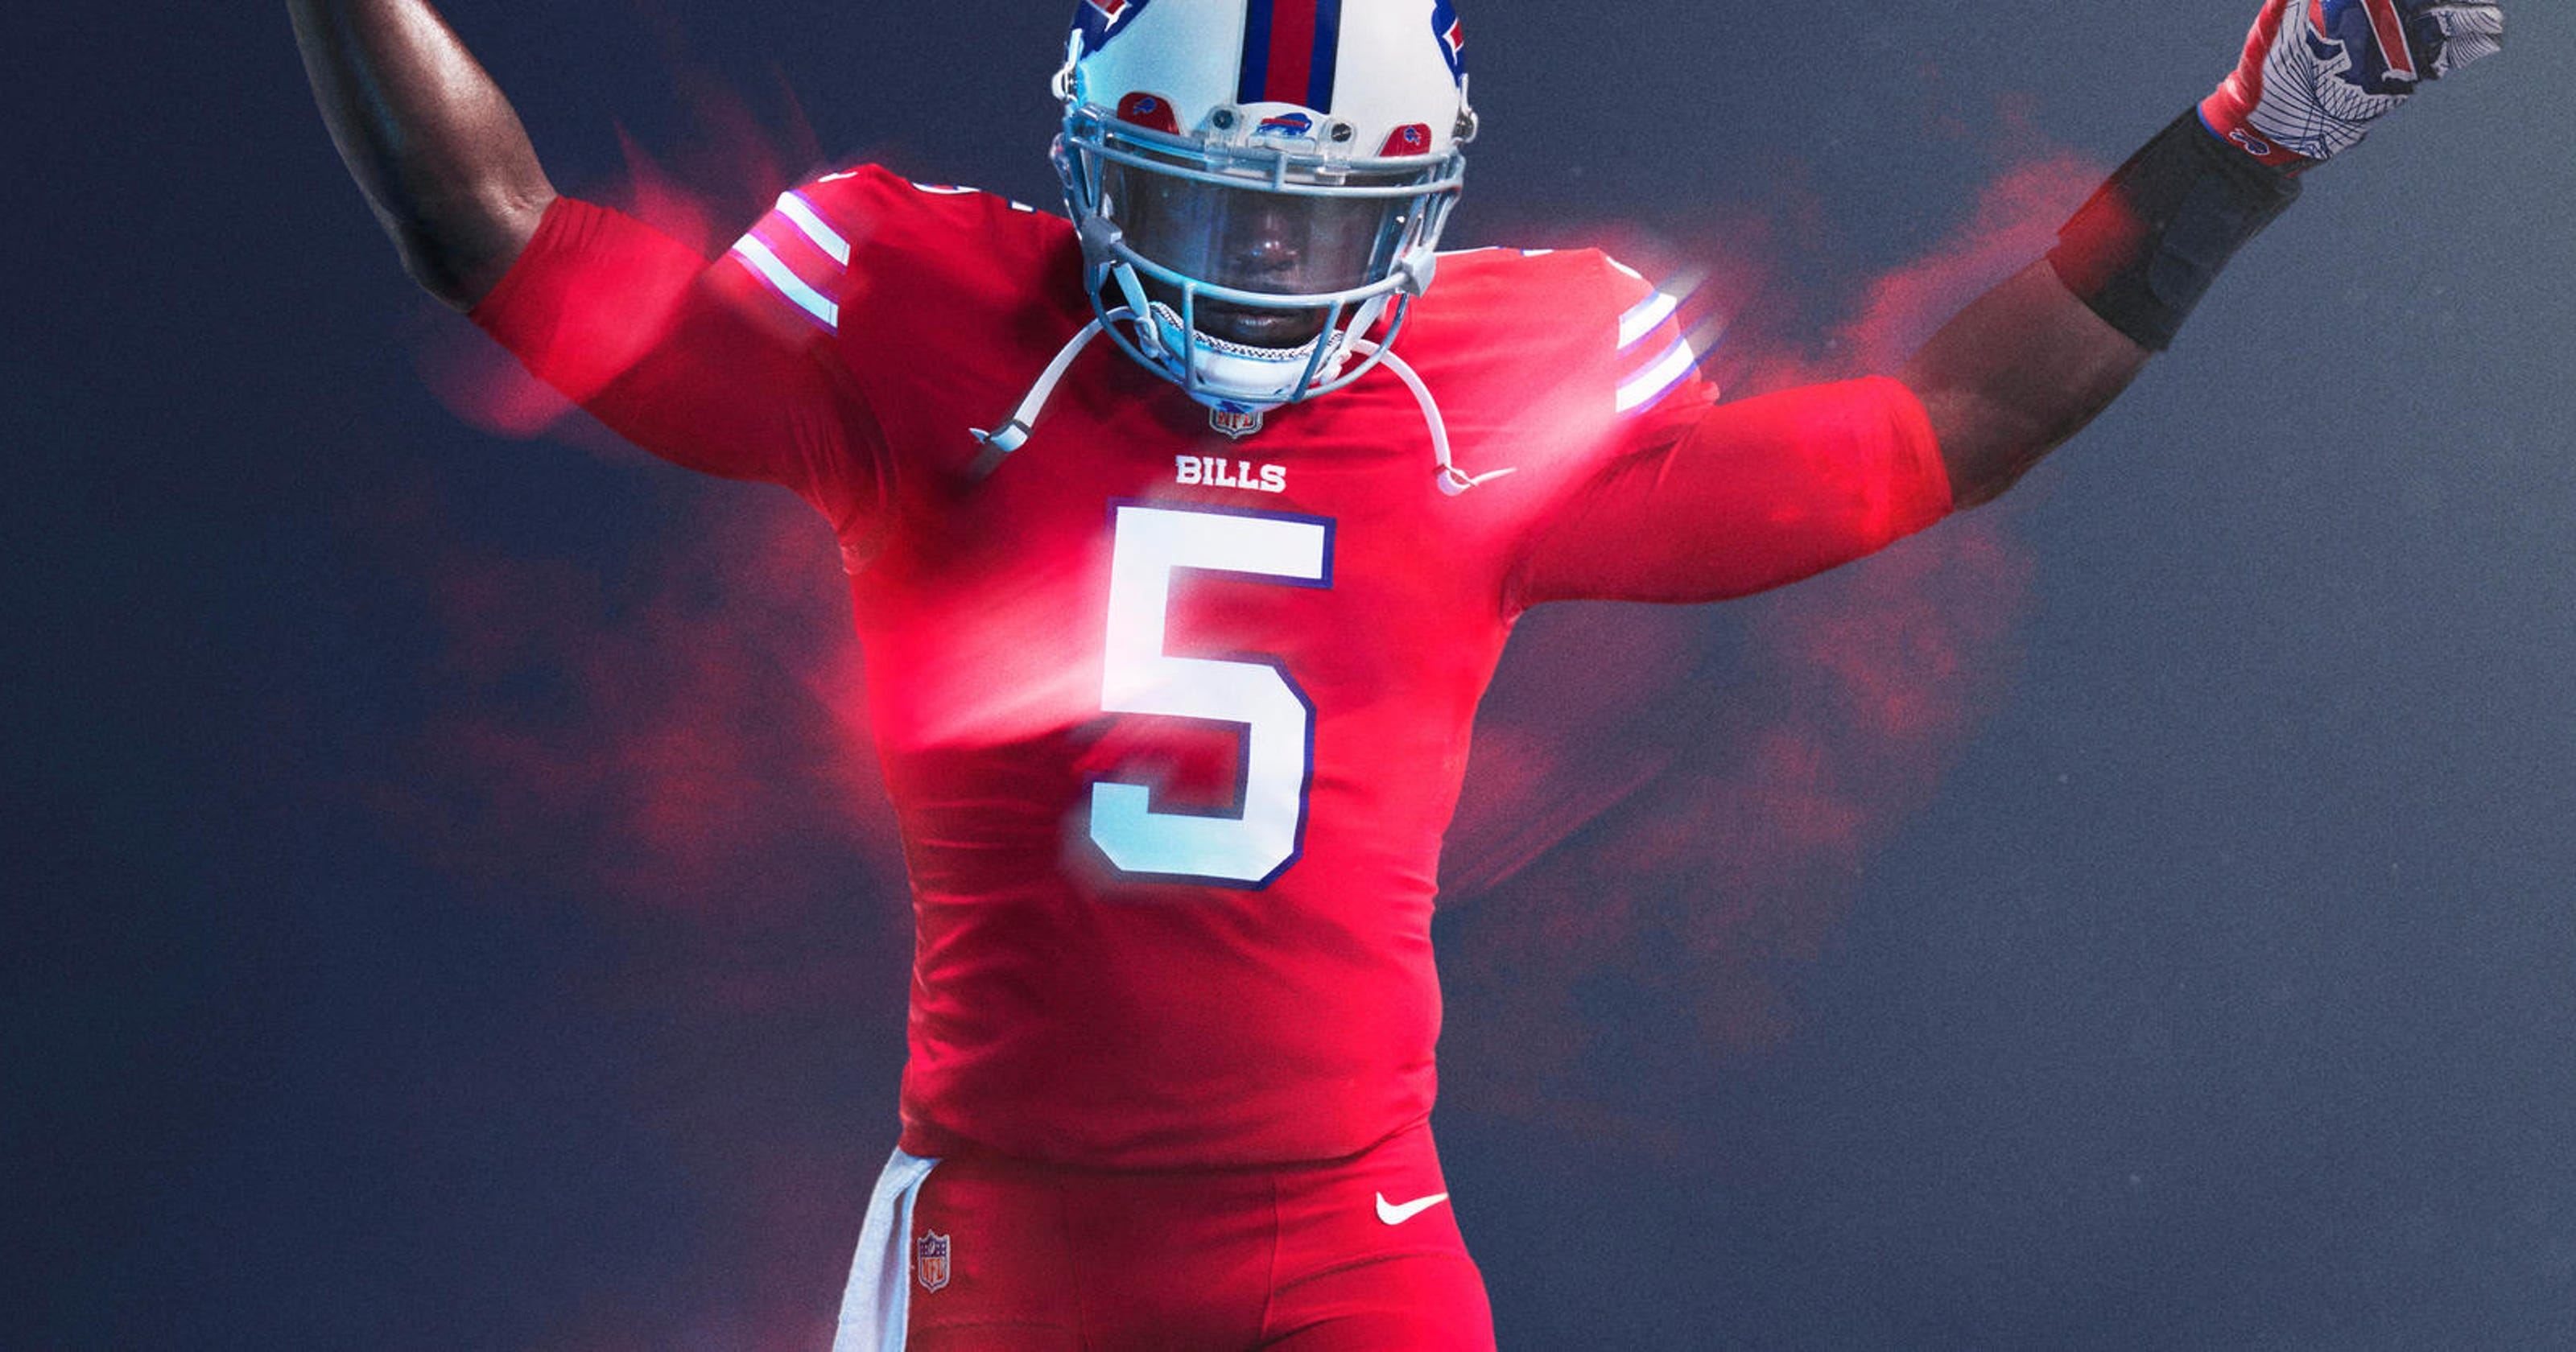 968a3f189ef NFL takes Color Rush uniforms to next level